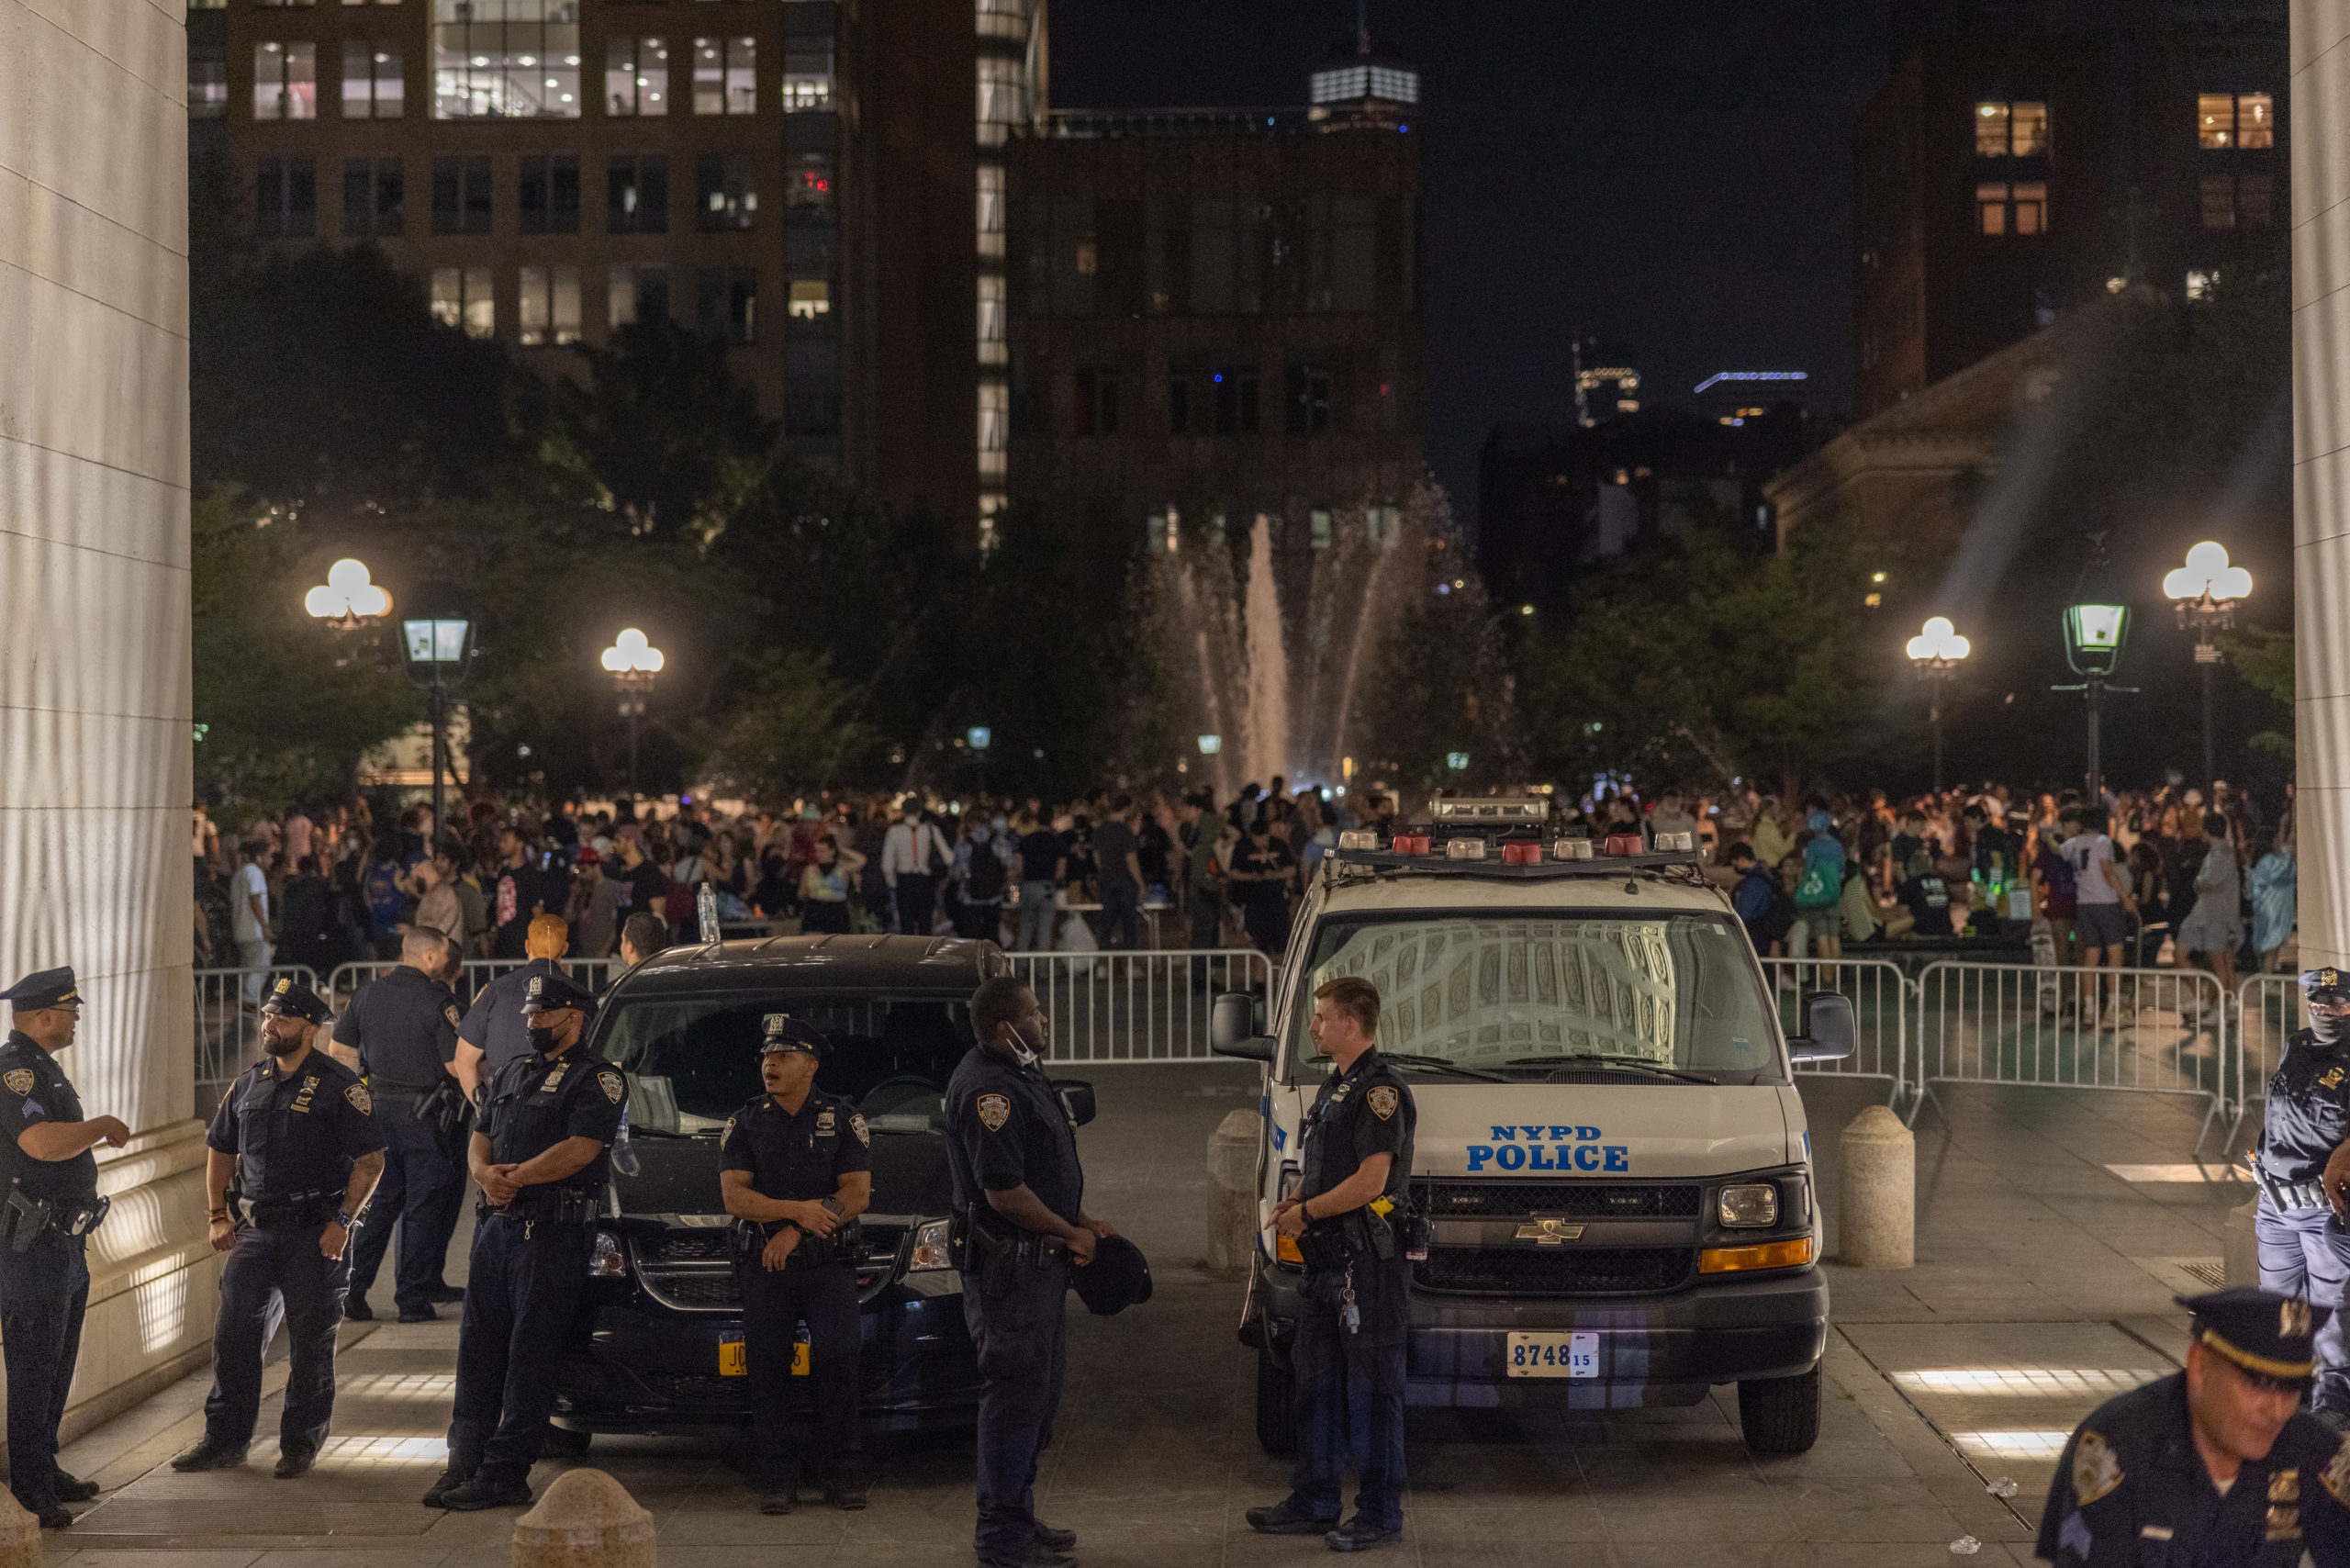 Police set up a perimeter beneath the archway of Washington Square Park on June 18, 2021 in New York City. (Photo by Alex Kent/Getty Images)